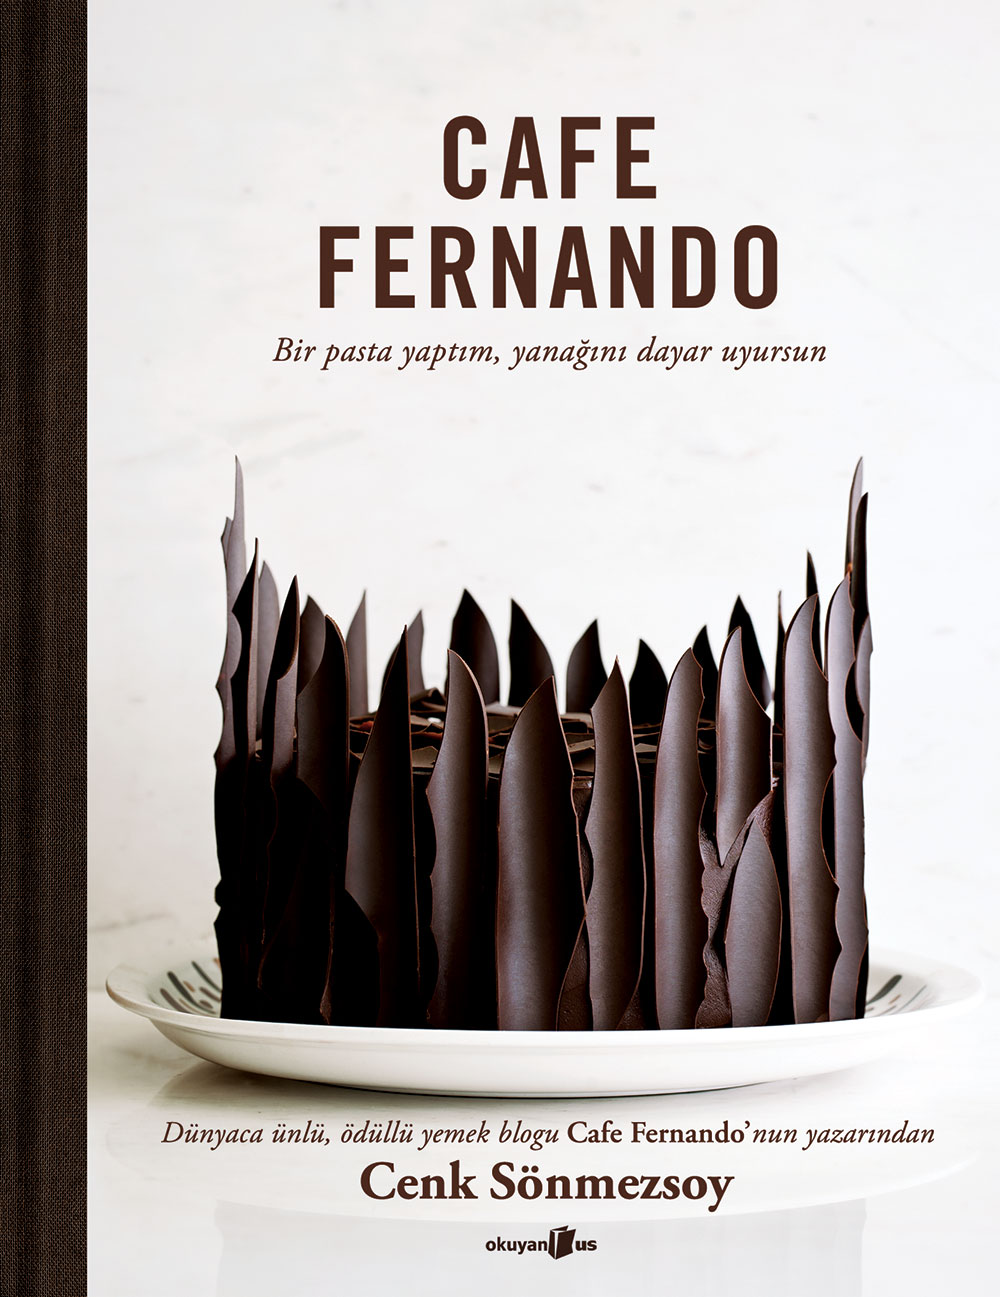 Cafe Fernando Cookbook